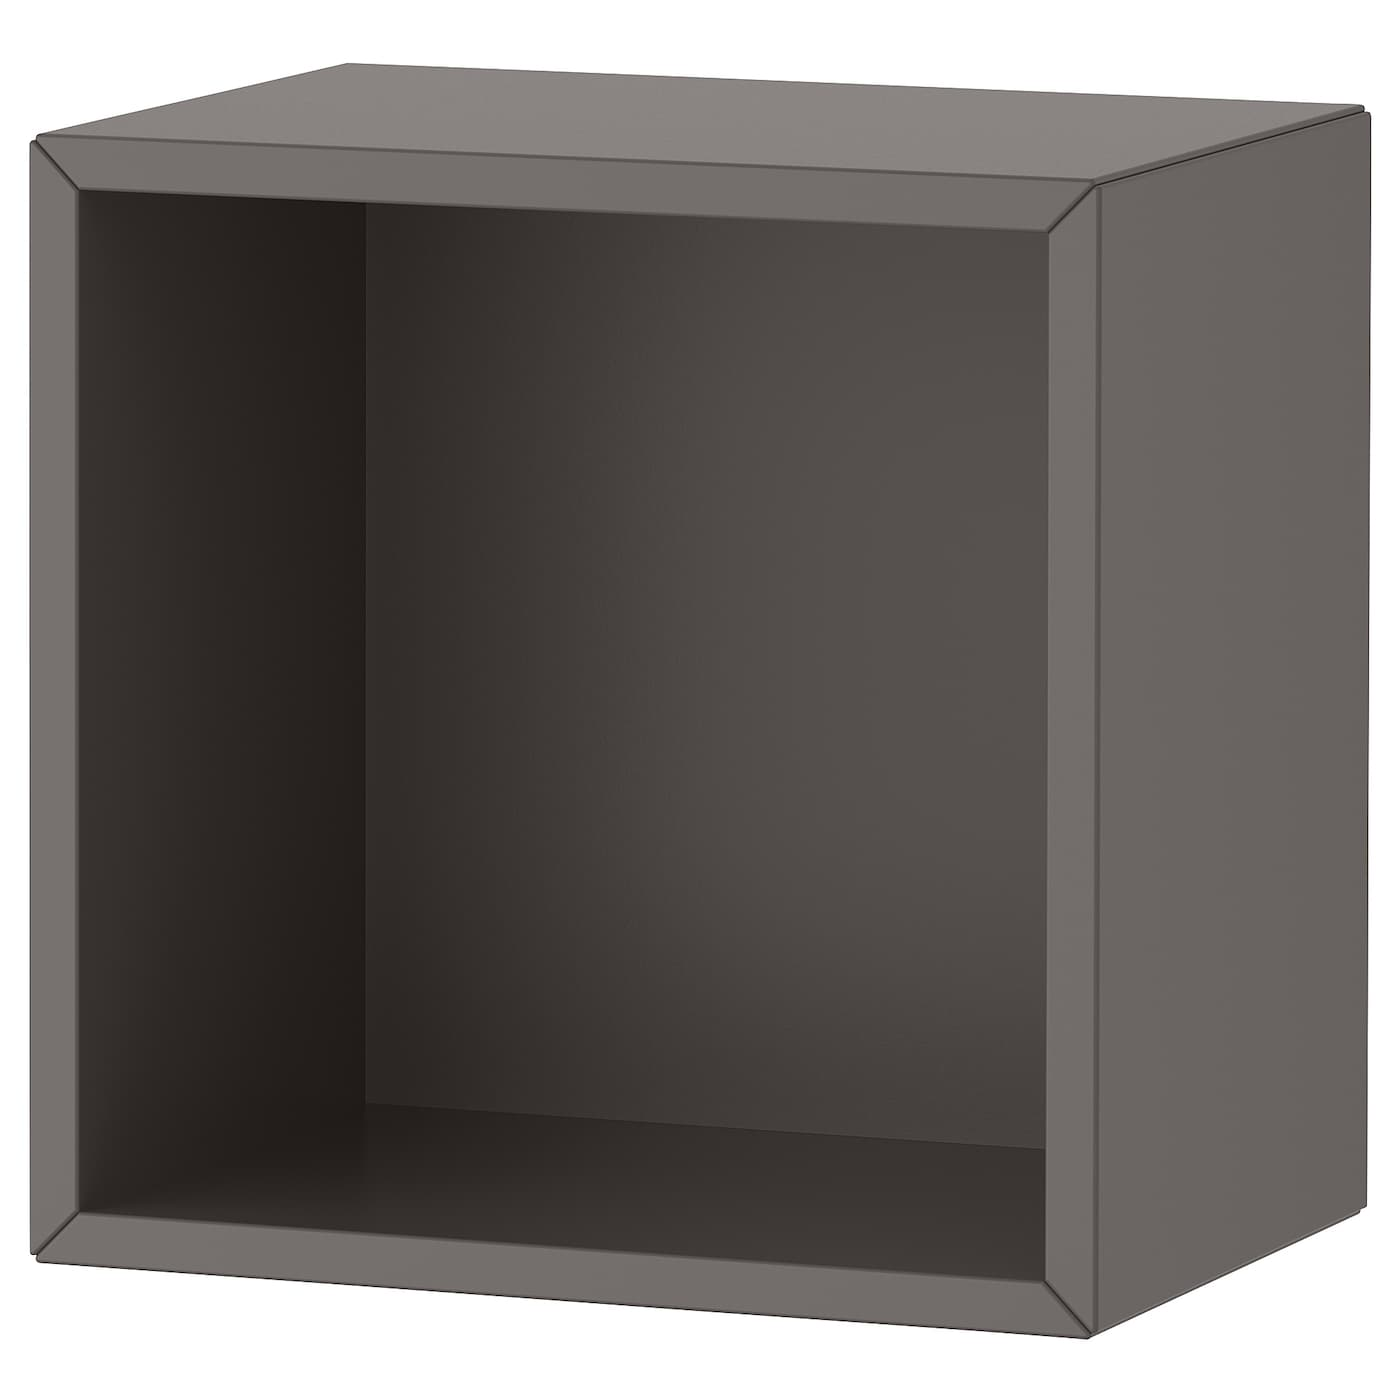 eket rangement gris fonc 35 x 25 x 35 cm ikea. Black Bedroom Furniture Sets. Home Design Ideas